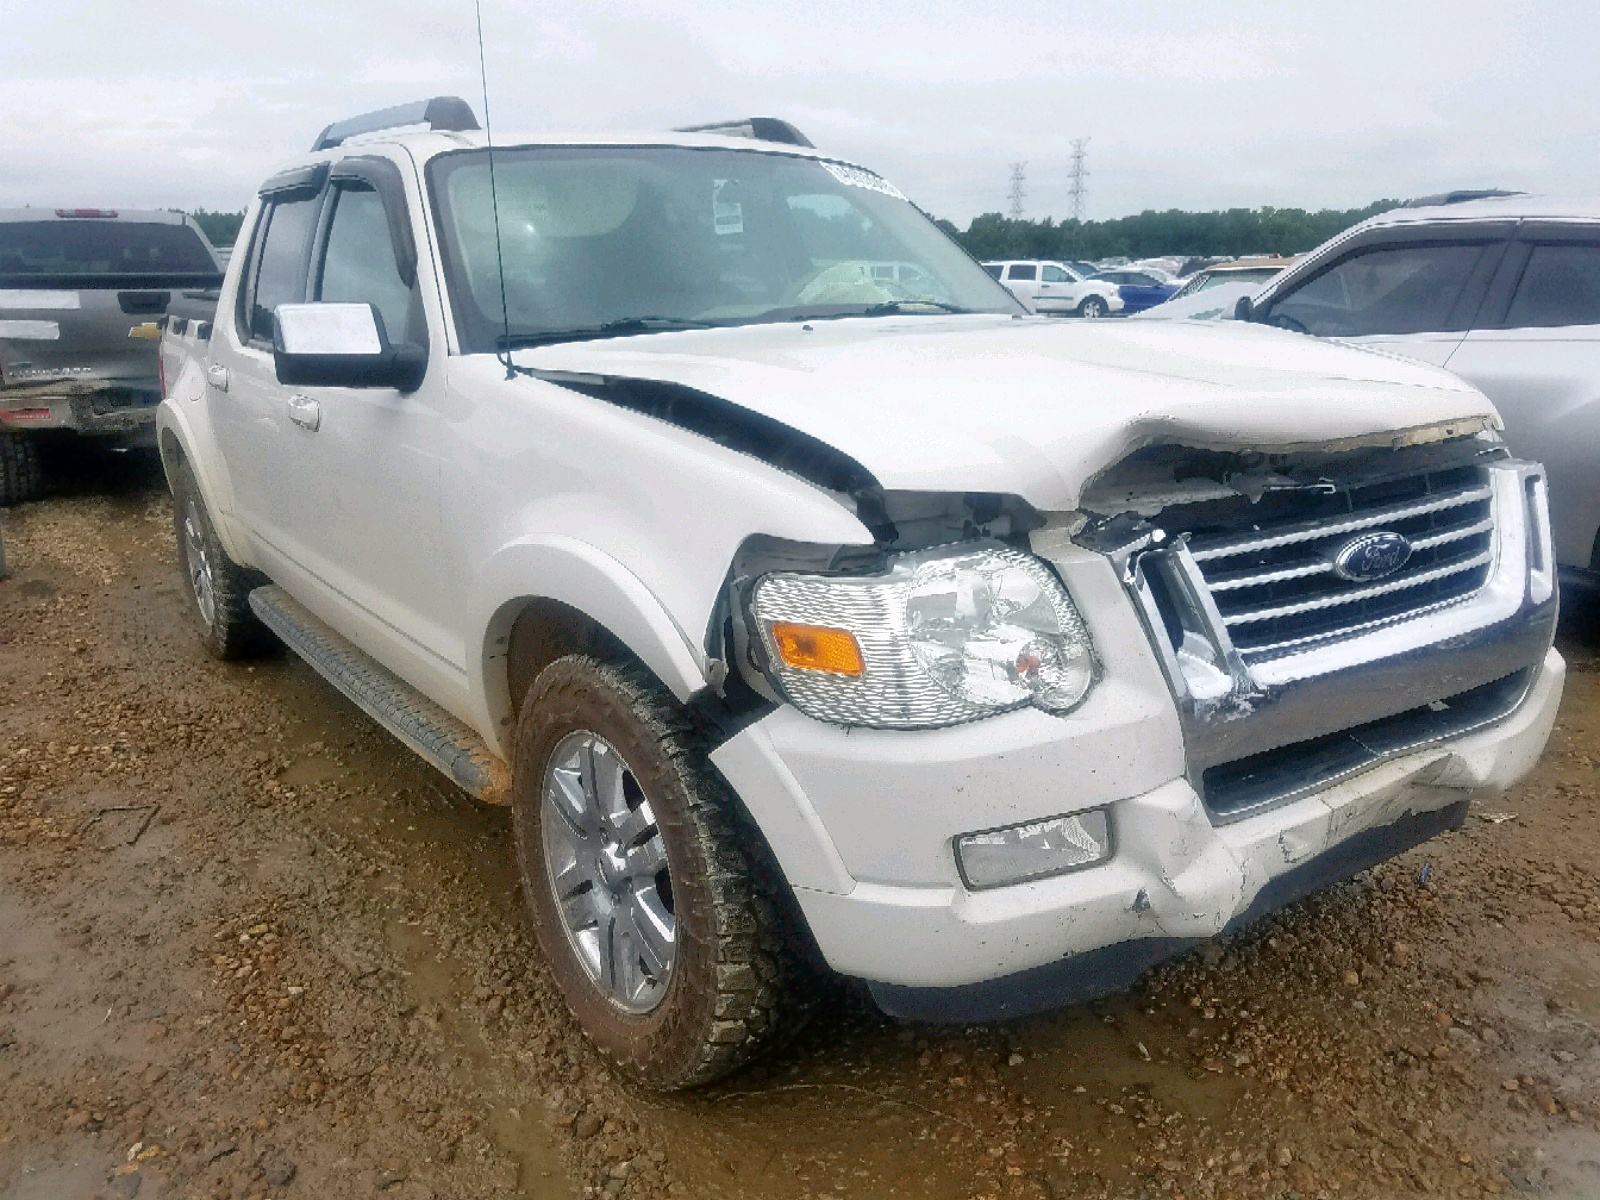 1FMEU33E18UA99057 - 2008 Ford Explorer S 4.0L Left View